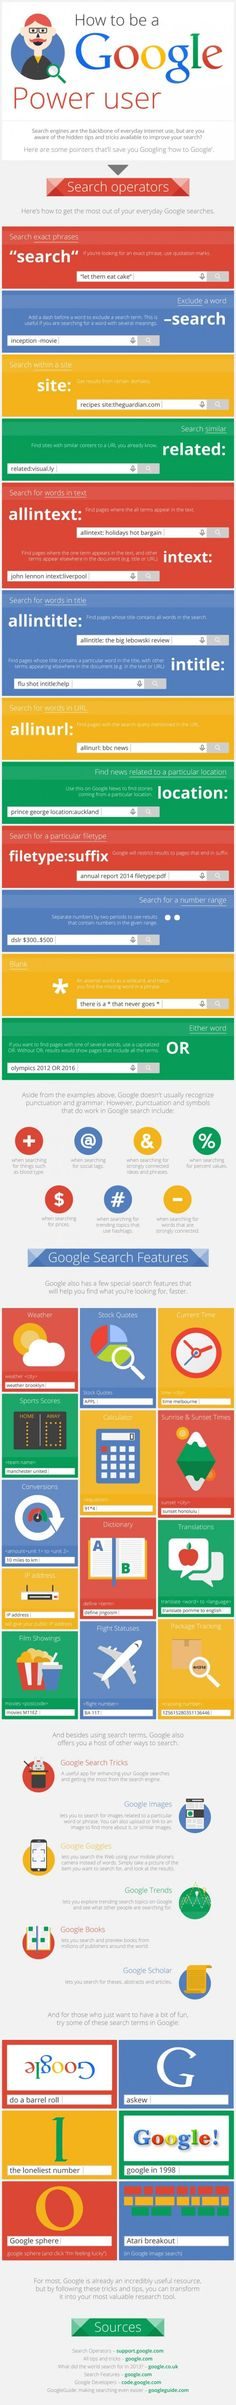 Tips and Tricks to Using #Google  also see :- http://www.solvemyhow.com/2016/04/google-hacking-how-to-use-google-for-hacking26.html